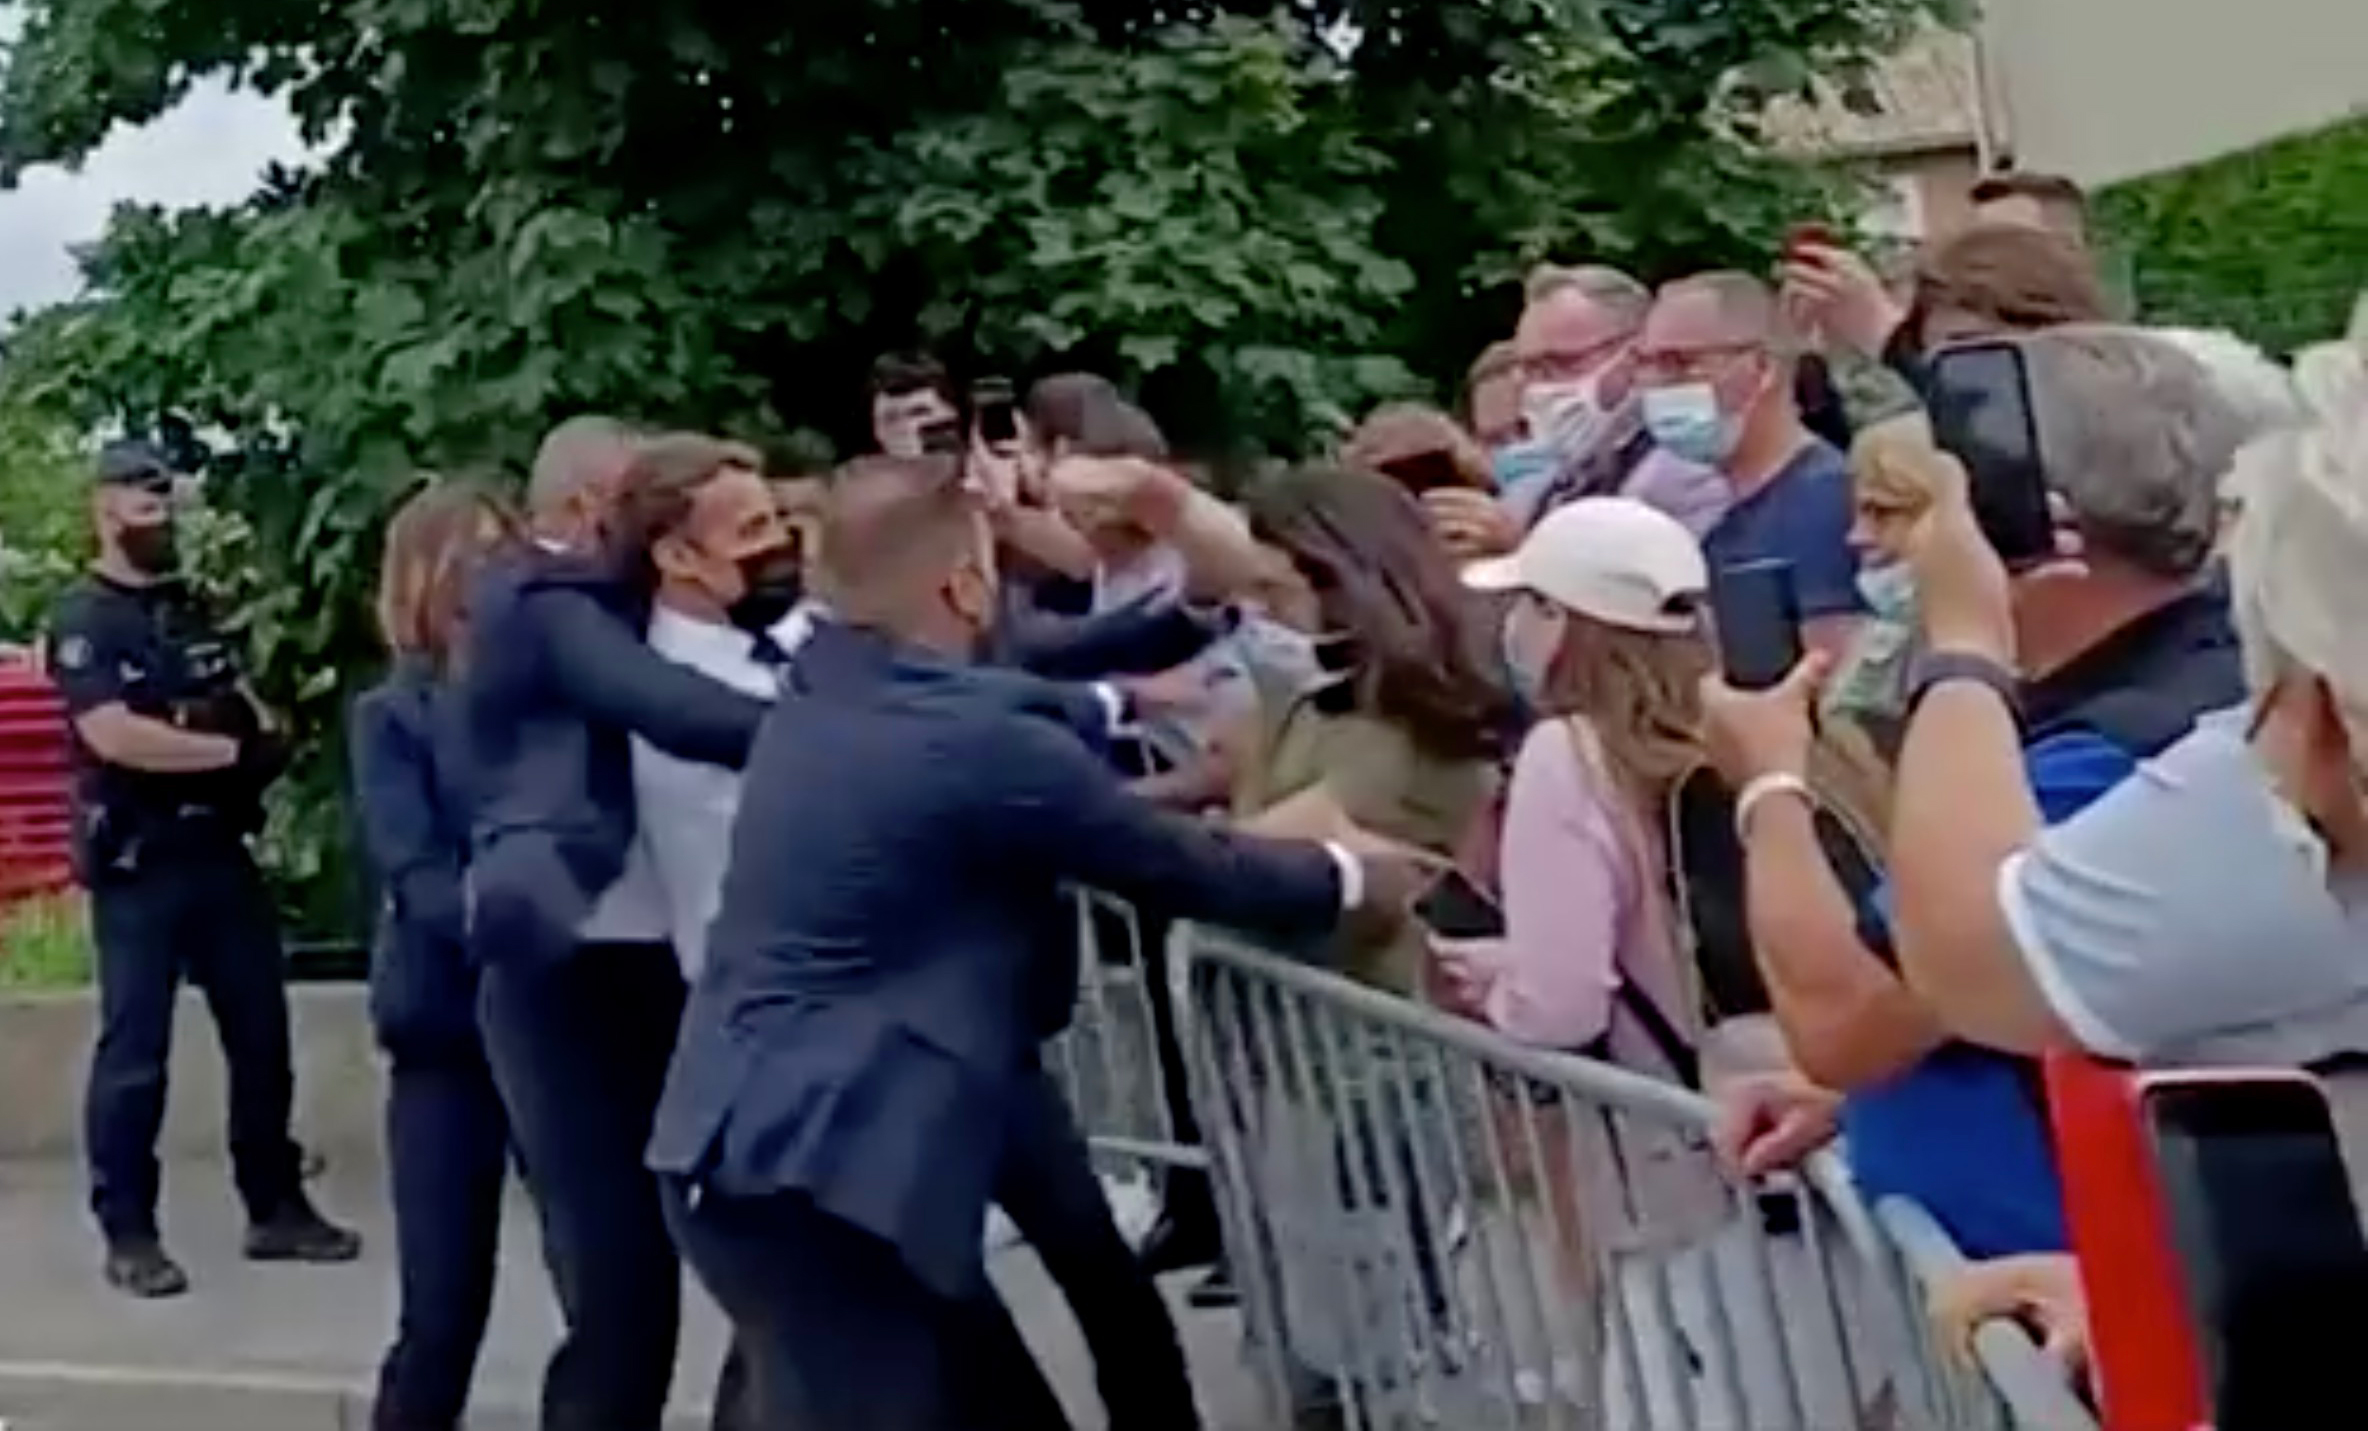 French President Emmanuel Macron is slapped in the face by a member of the public during a visit to Tain-l'Hermitage, France, June 8, 2021. BFMTV via Reuters TV